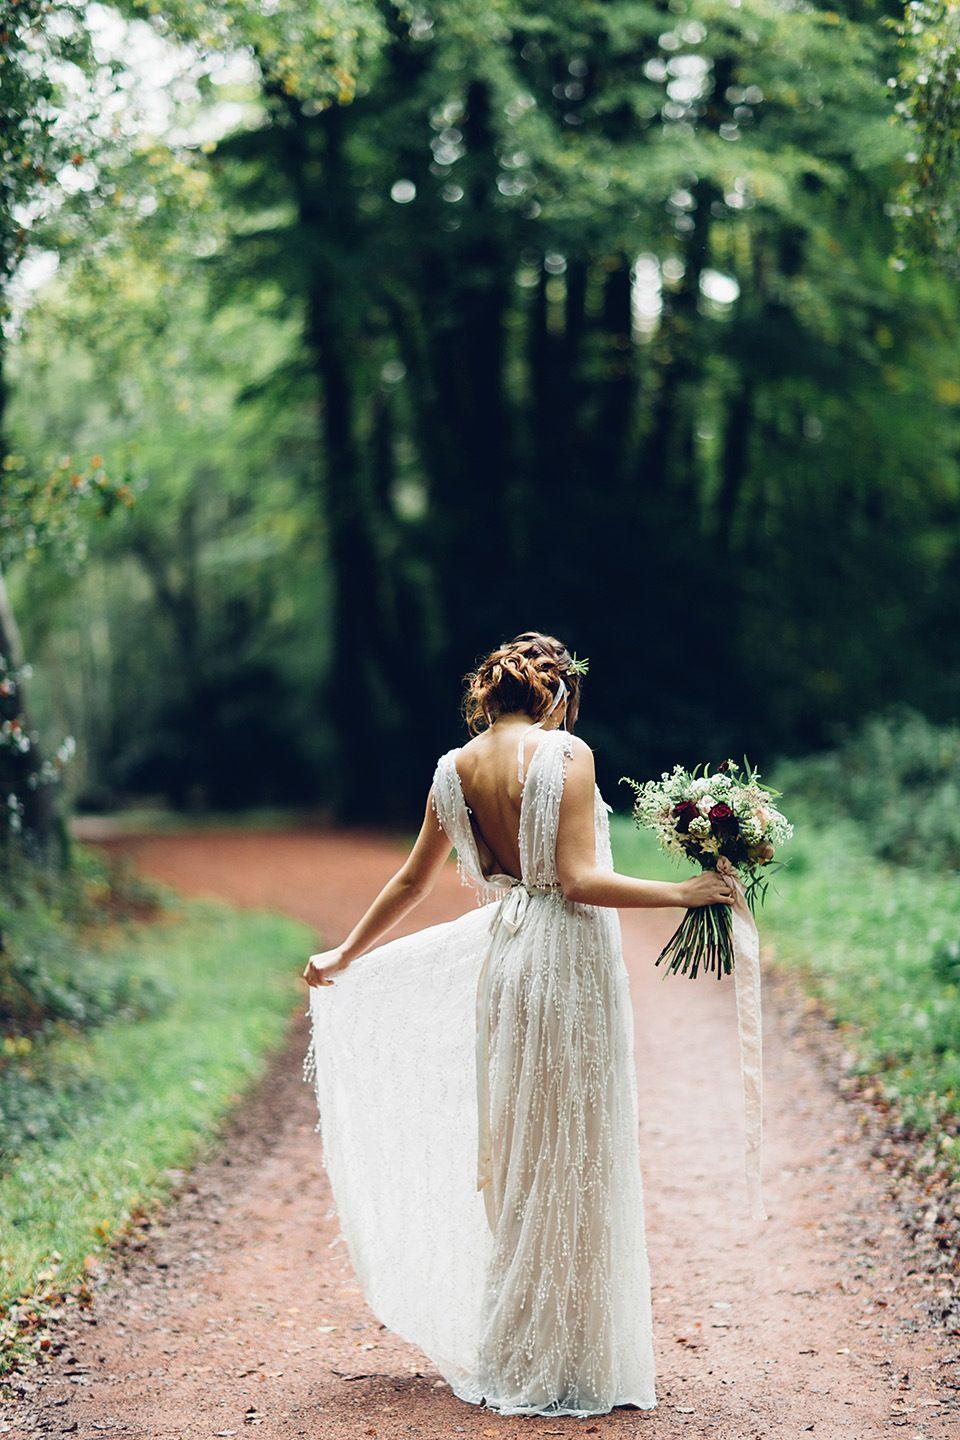 Simple wedding dresses for eloping  A Beautiful and Whimsical Woodland Elopement  Elopements Wedding